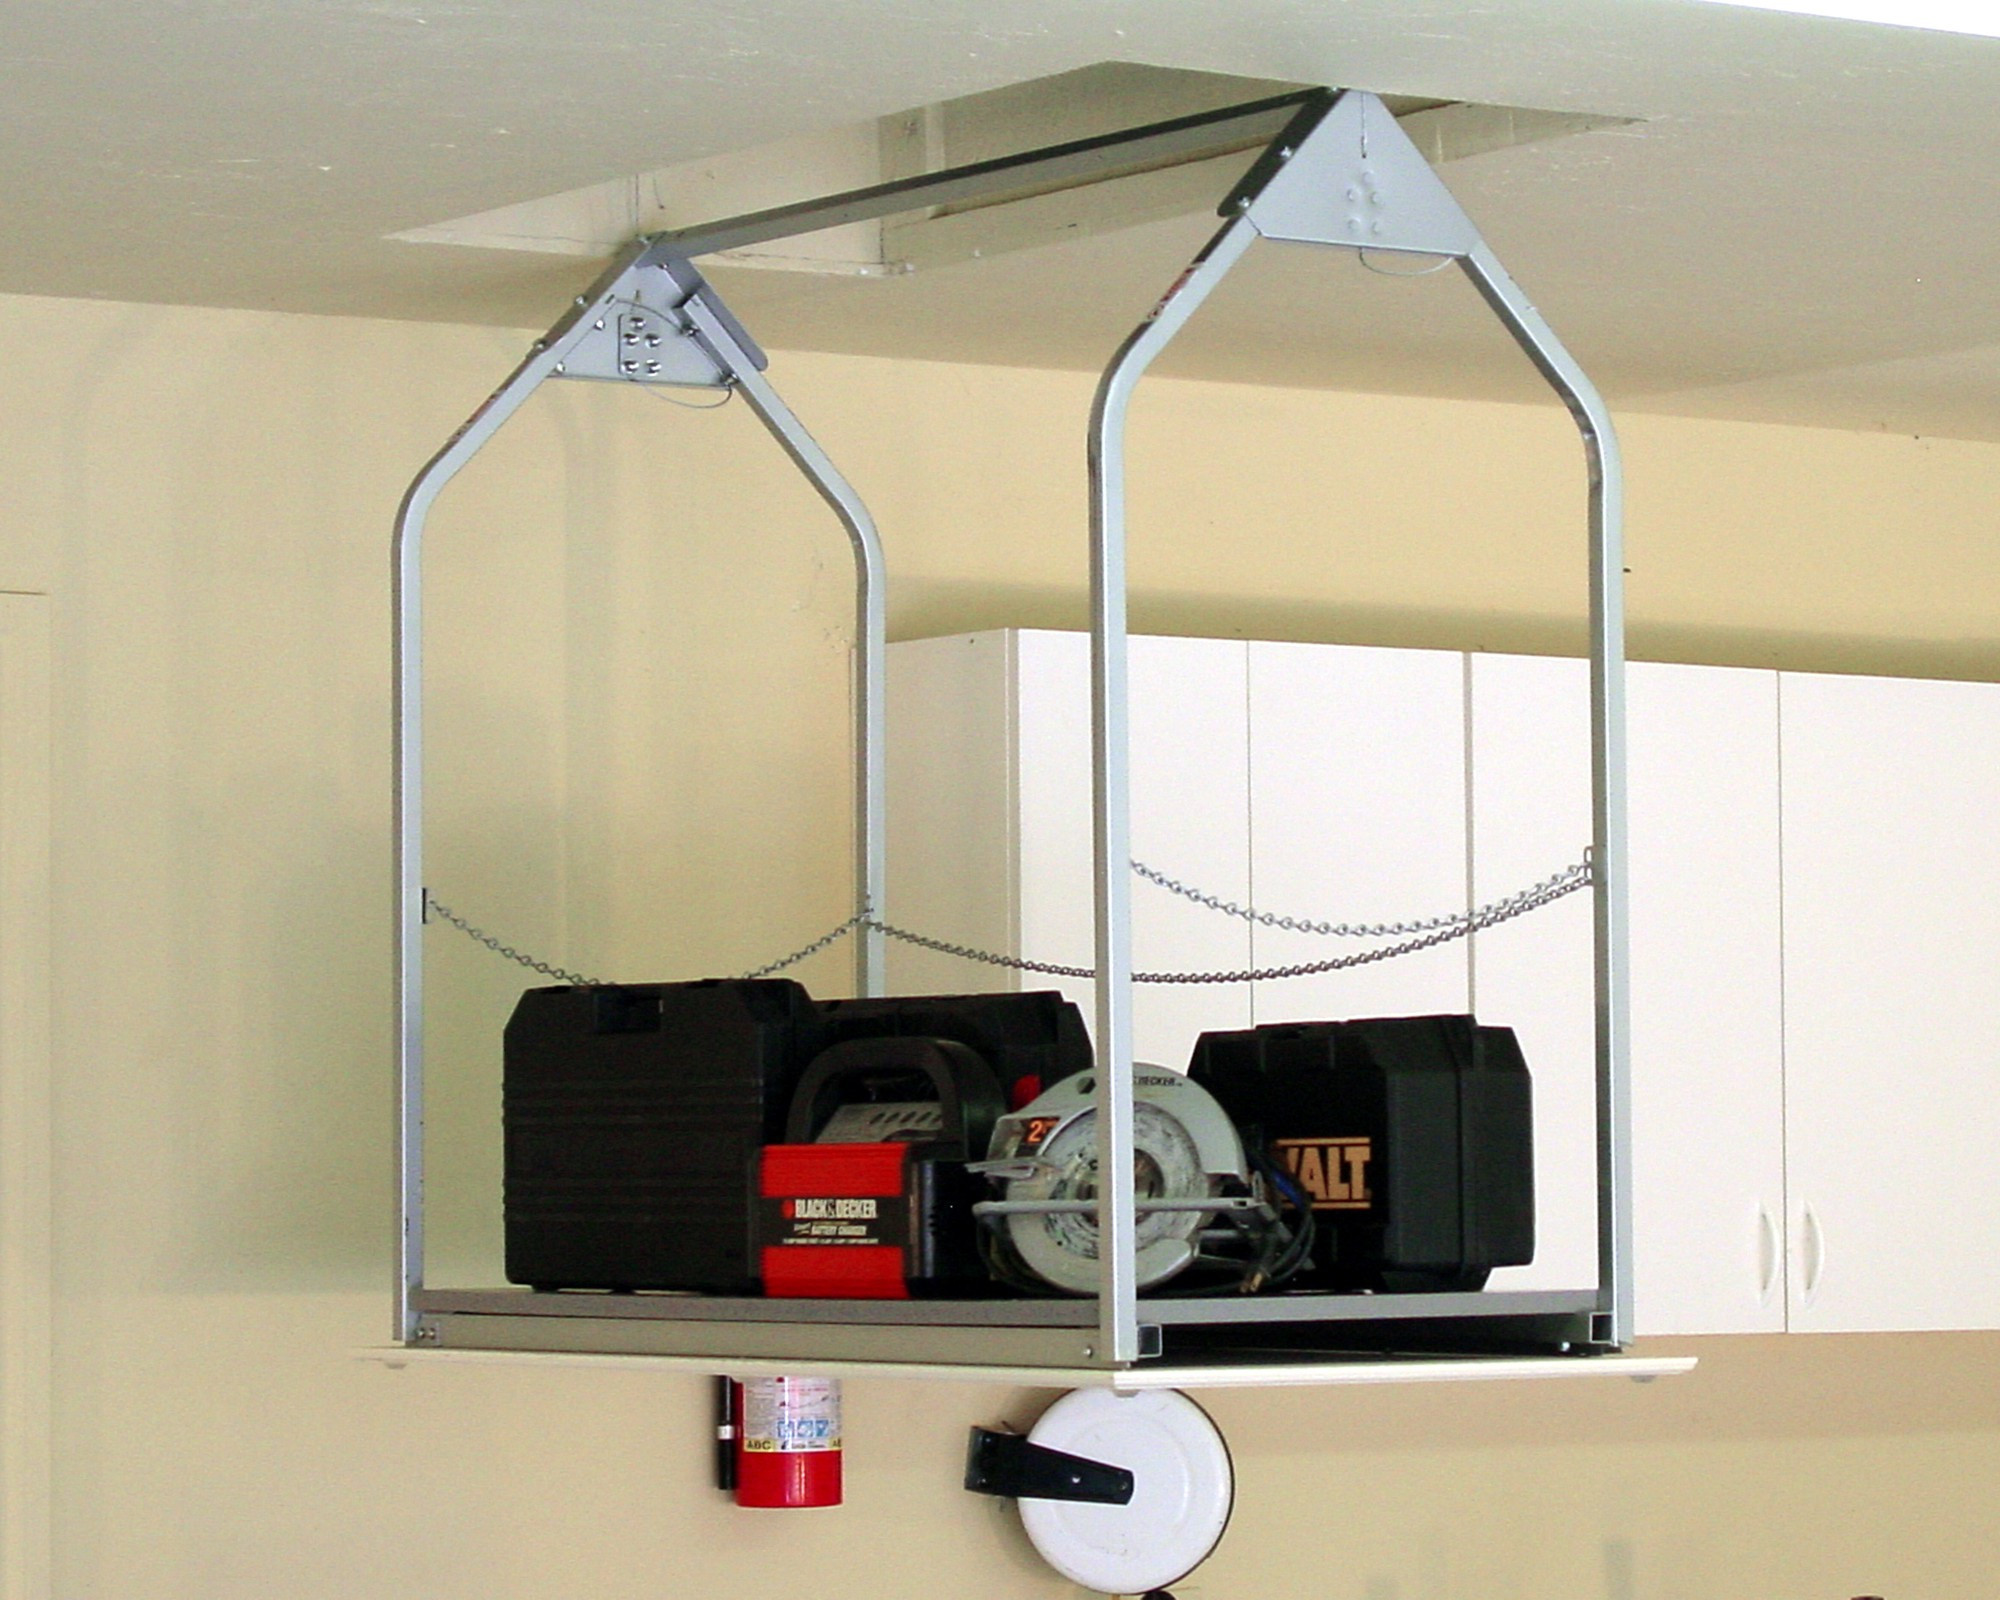 Best ideas about Garage Ceiling Storage Lift . Save or Pin Attic Saddle Storage System • Attic Ideas Now.